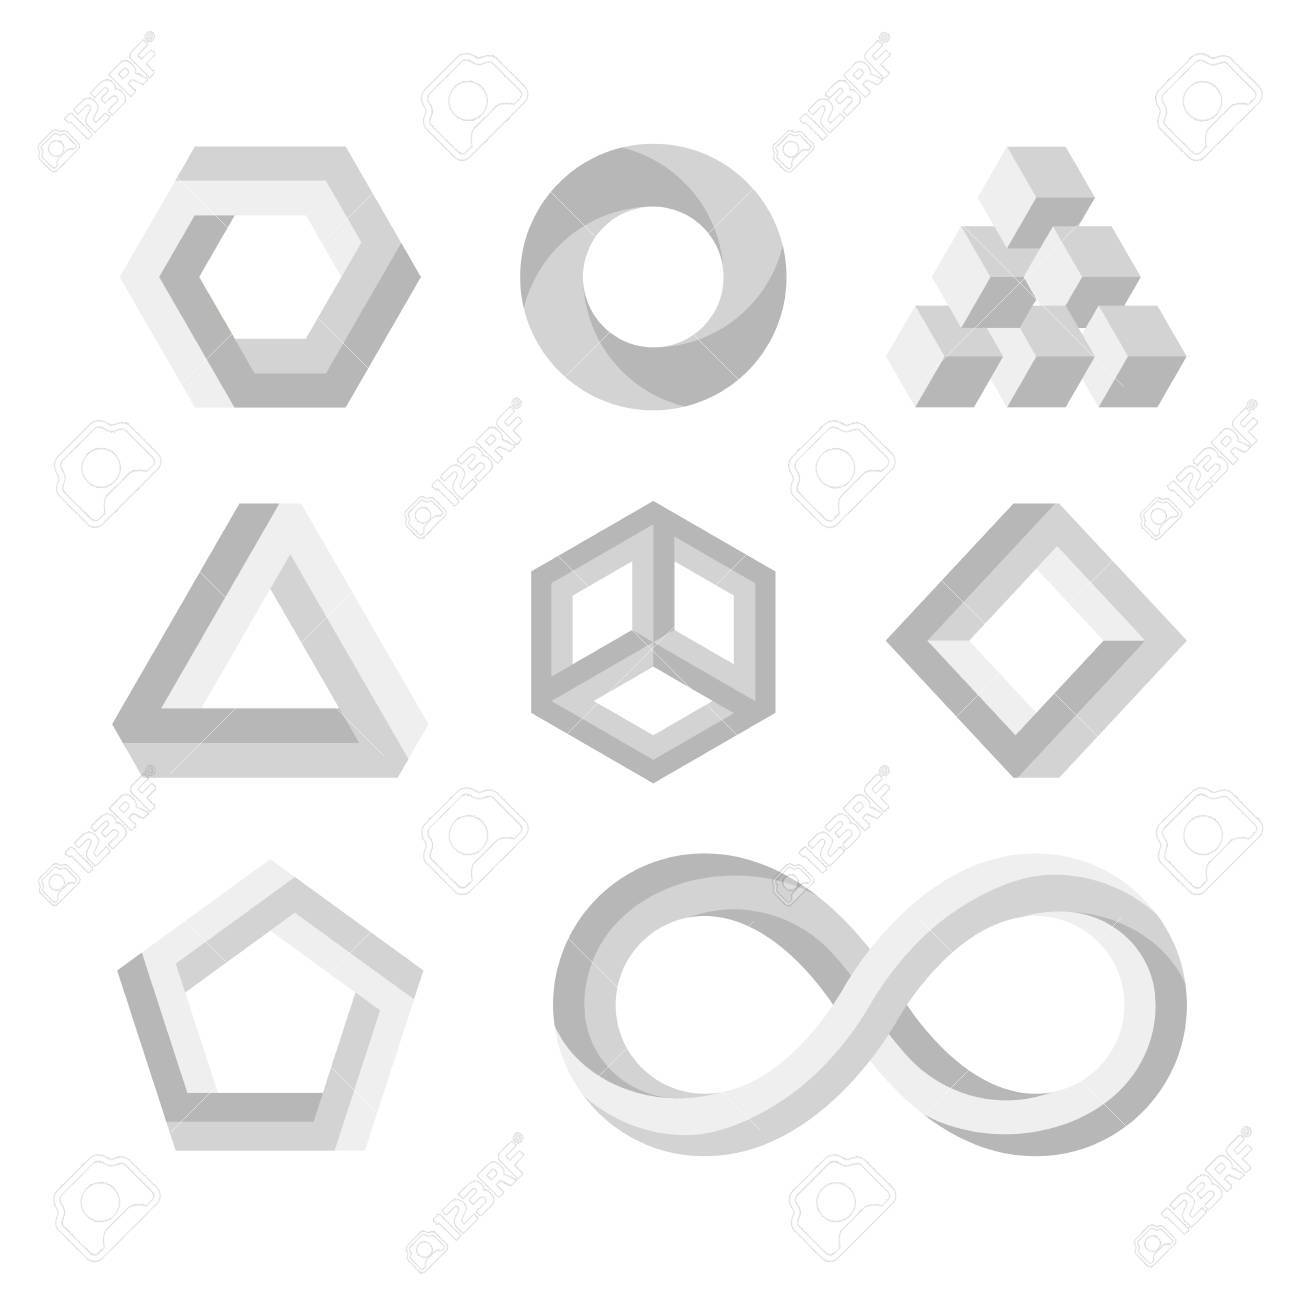 Paradox impossible shapes 3d twisted objects vector math symbols paradox impossible shapes 3d twisted objects vector math symbols stock vector 66411125 buycottarizona Image collections